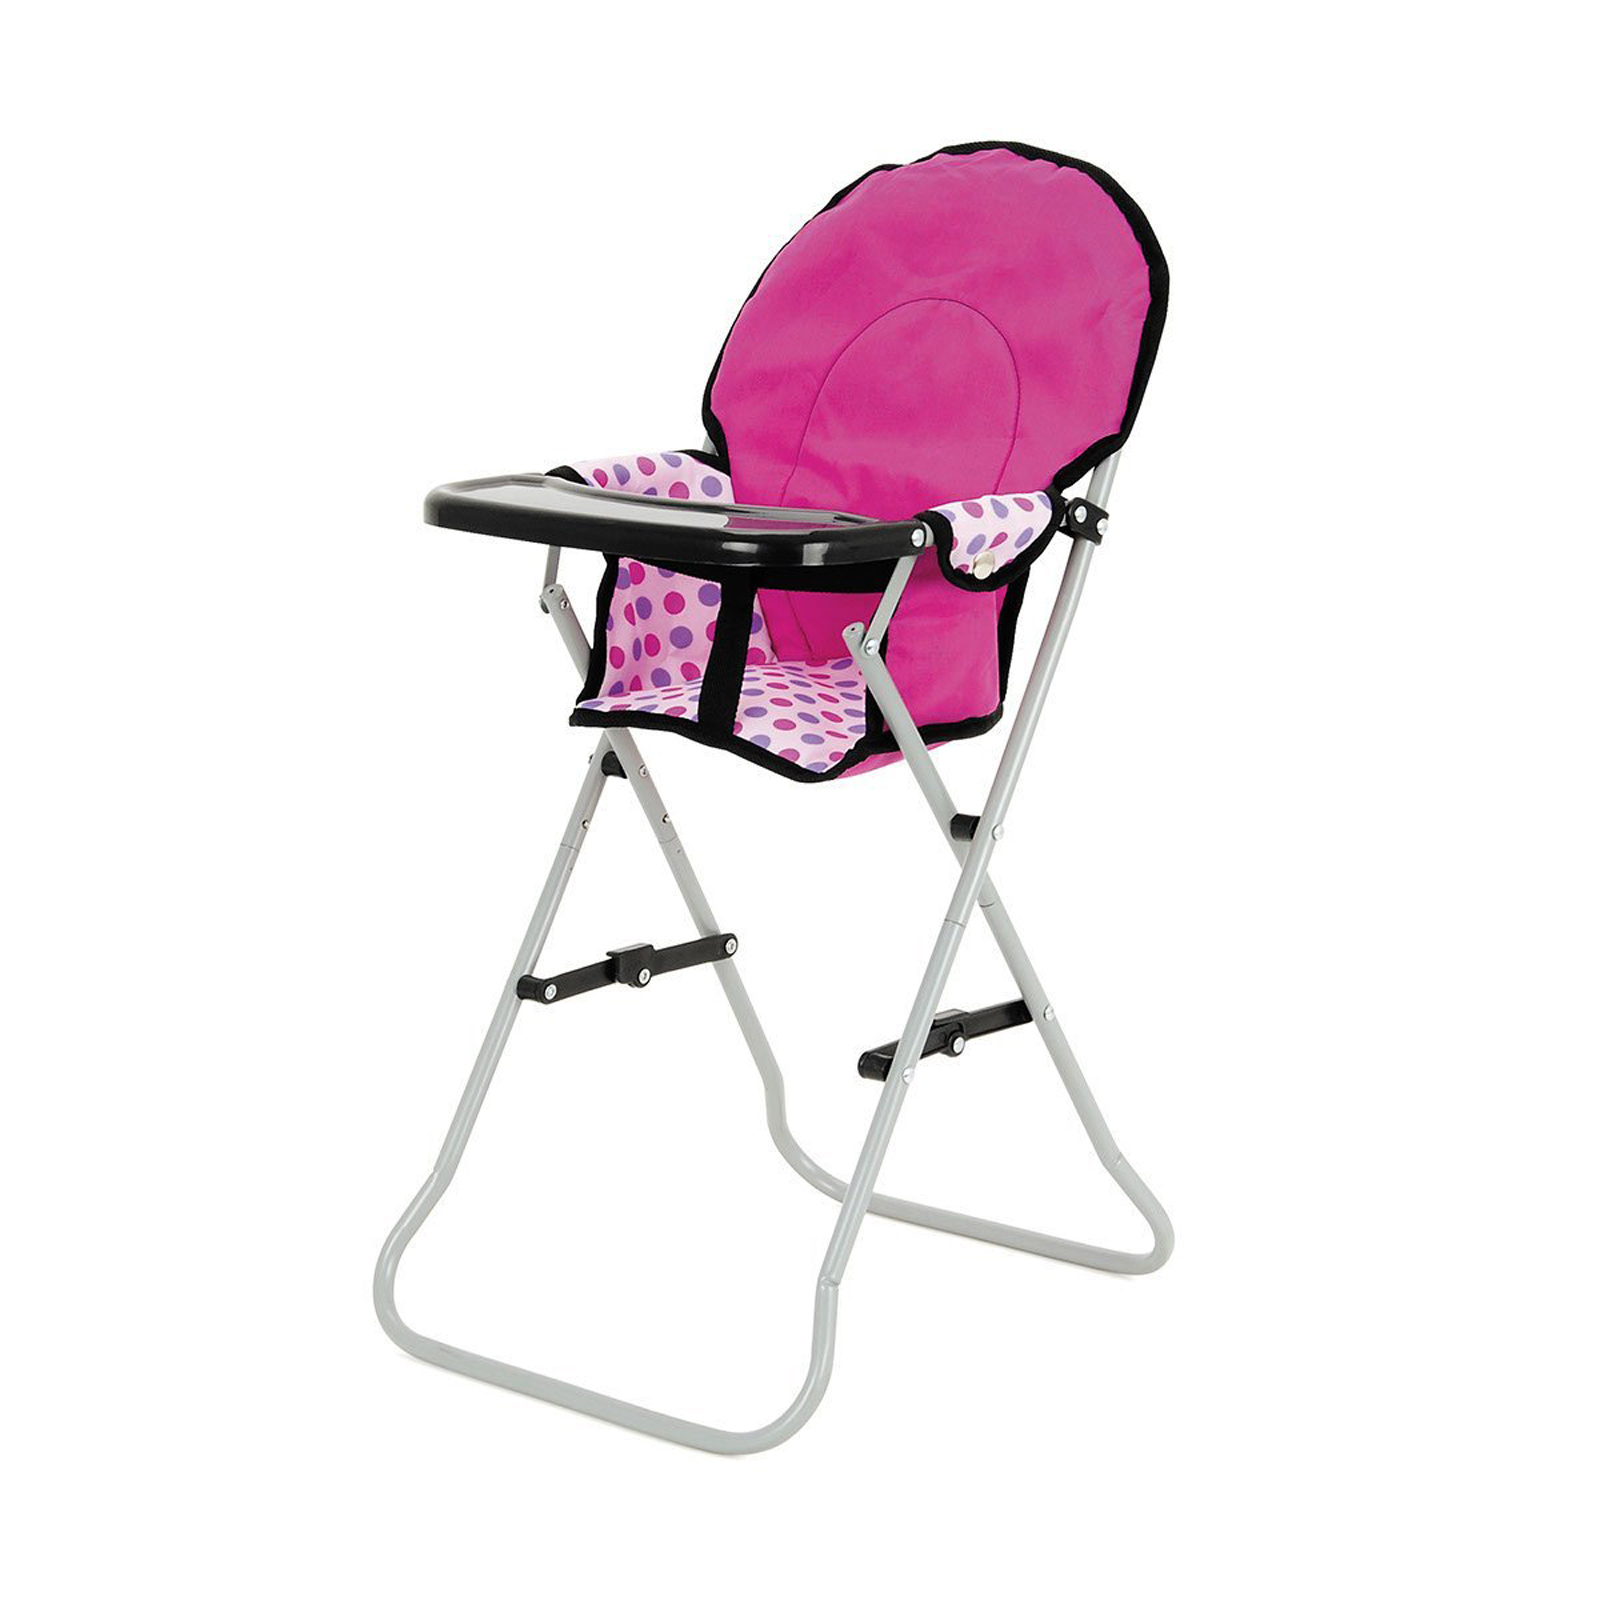 Toyrific Snuggles Collapsible Dolls Play Time Pink High